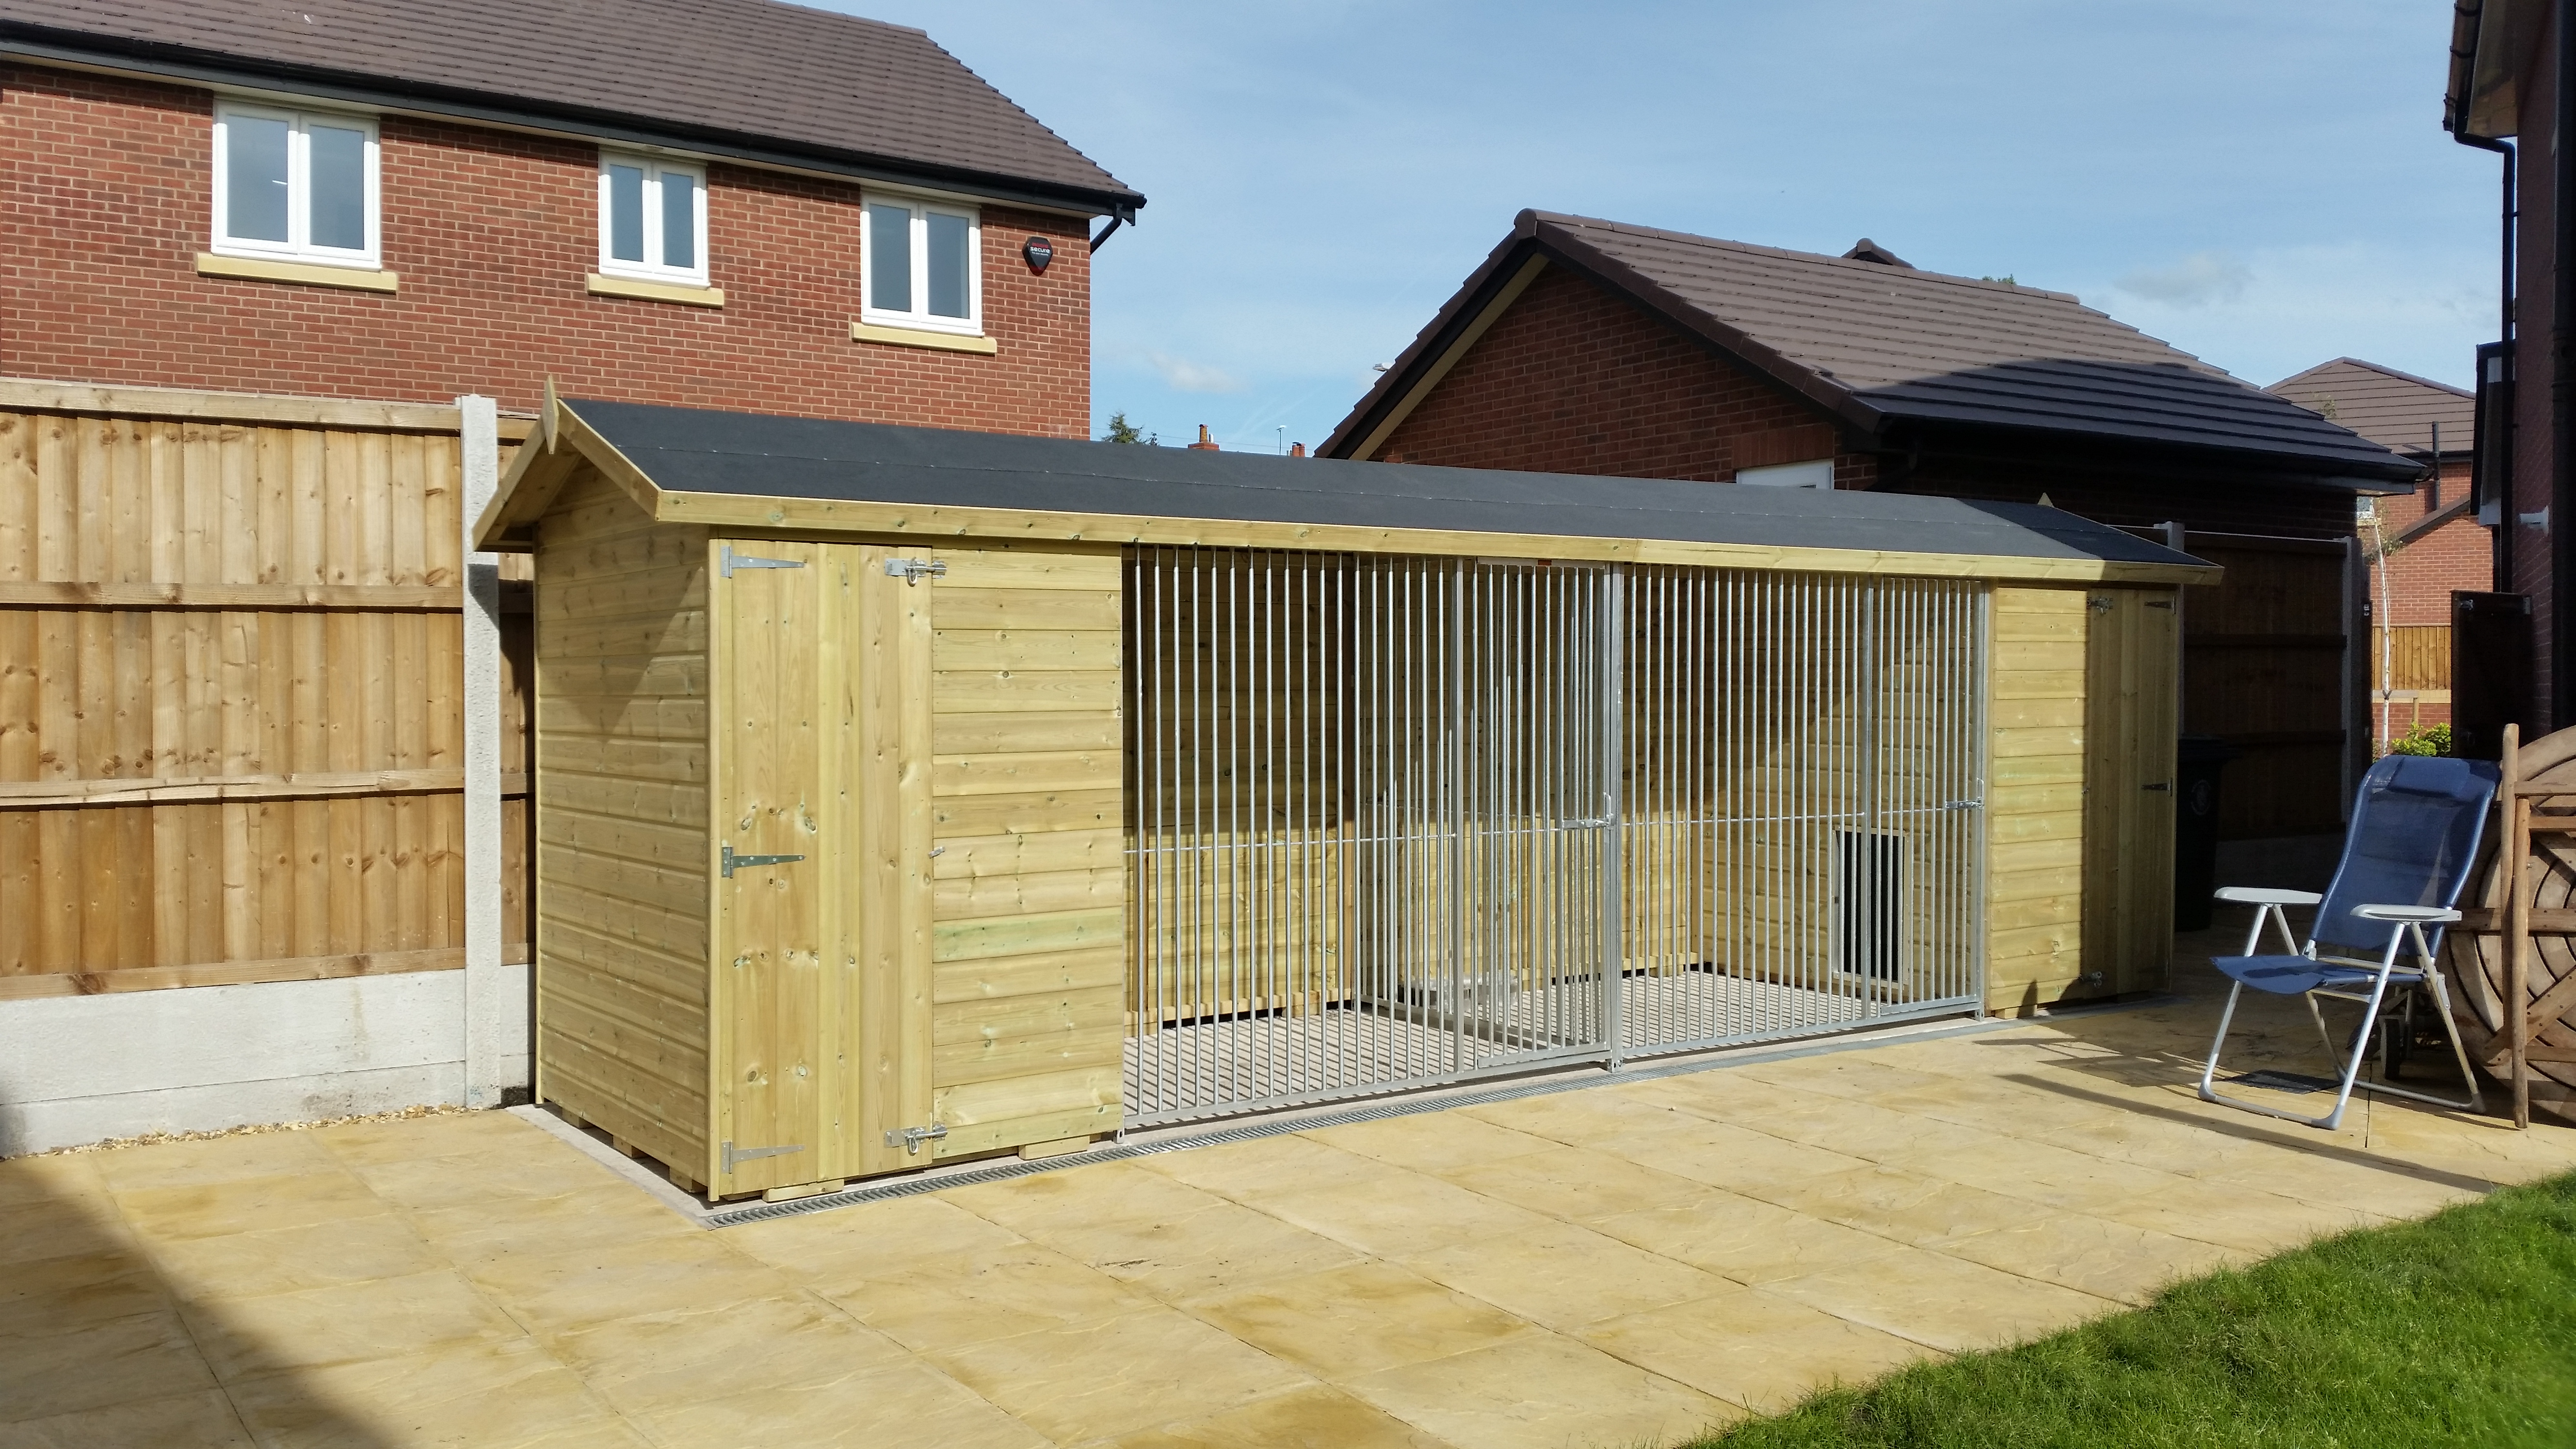 The Wymbury Double 21ft Wide x 5ft Deep Dog Kennel